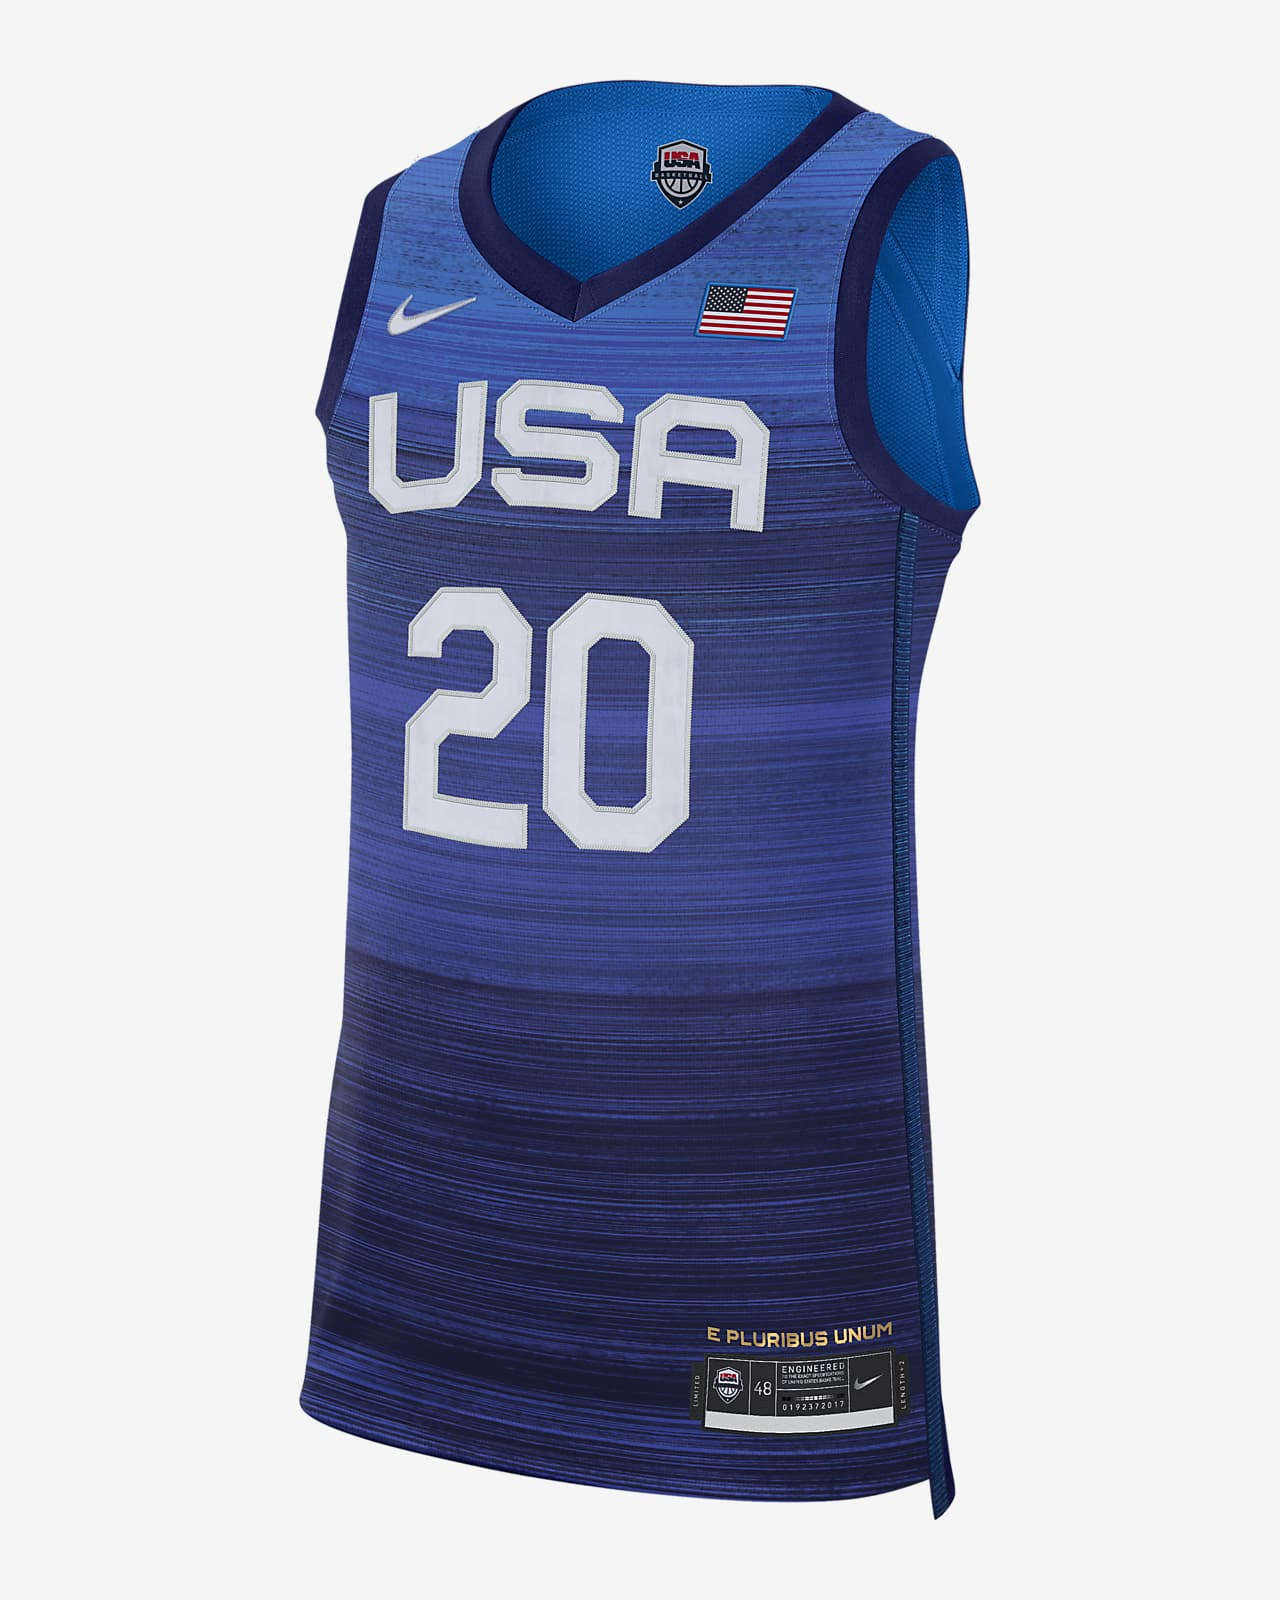 USA (Road) Authentic Men's Nike Basketball Jersey